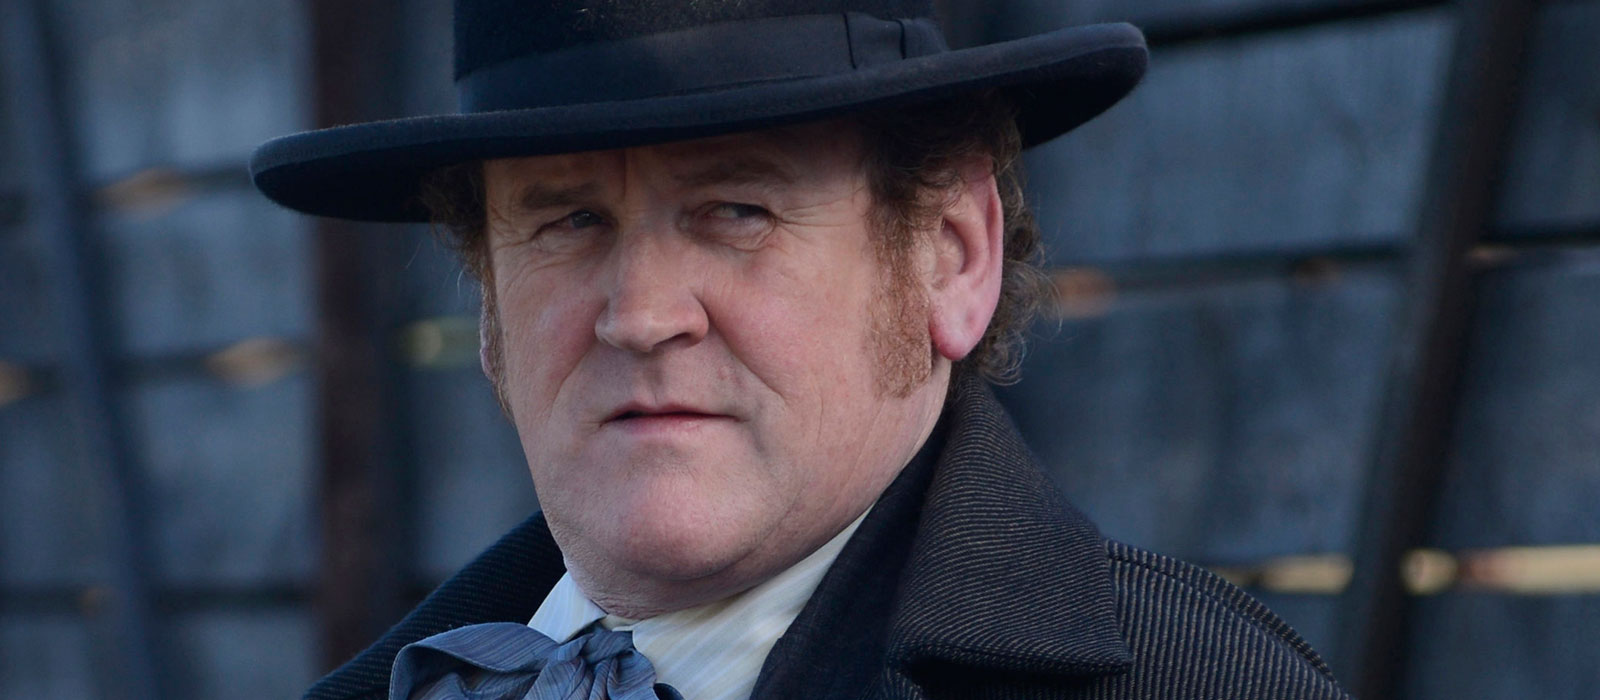 HOW_310_QA_ColmMeaney_L